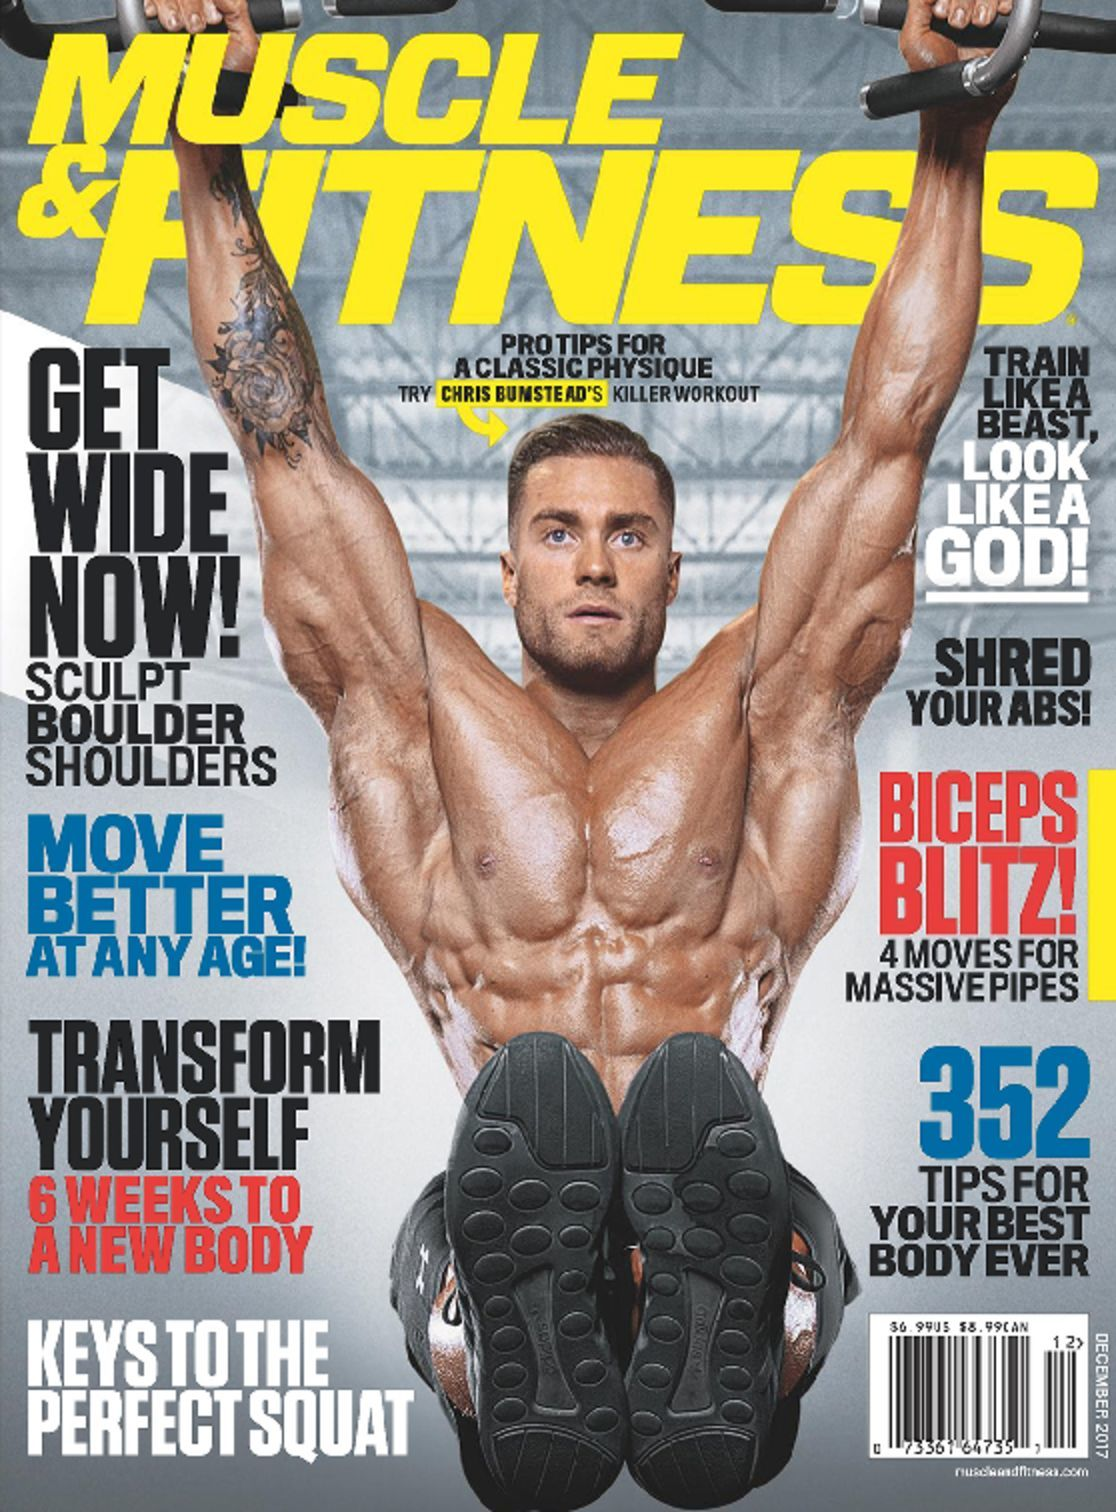 5015-muscle-fitness-Cover-2017-December-1-Issue.jpg